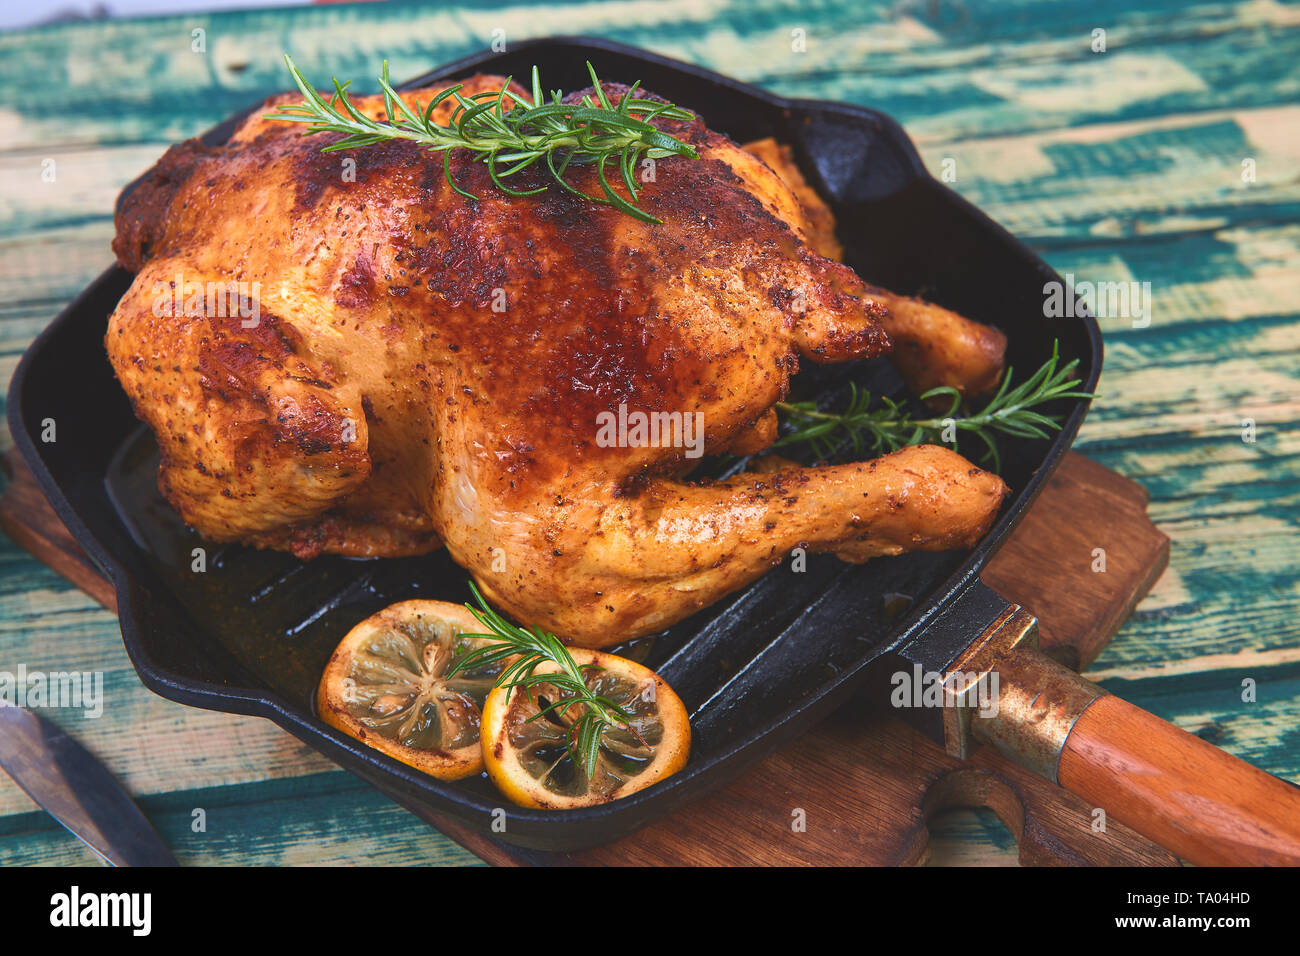 Baked whole chicken with apples in pan on wooden rustic background. Served on wooden board. Christmas chicken. - Stock Image